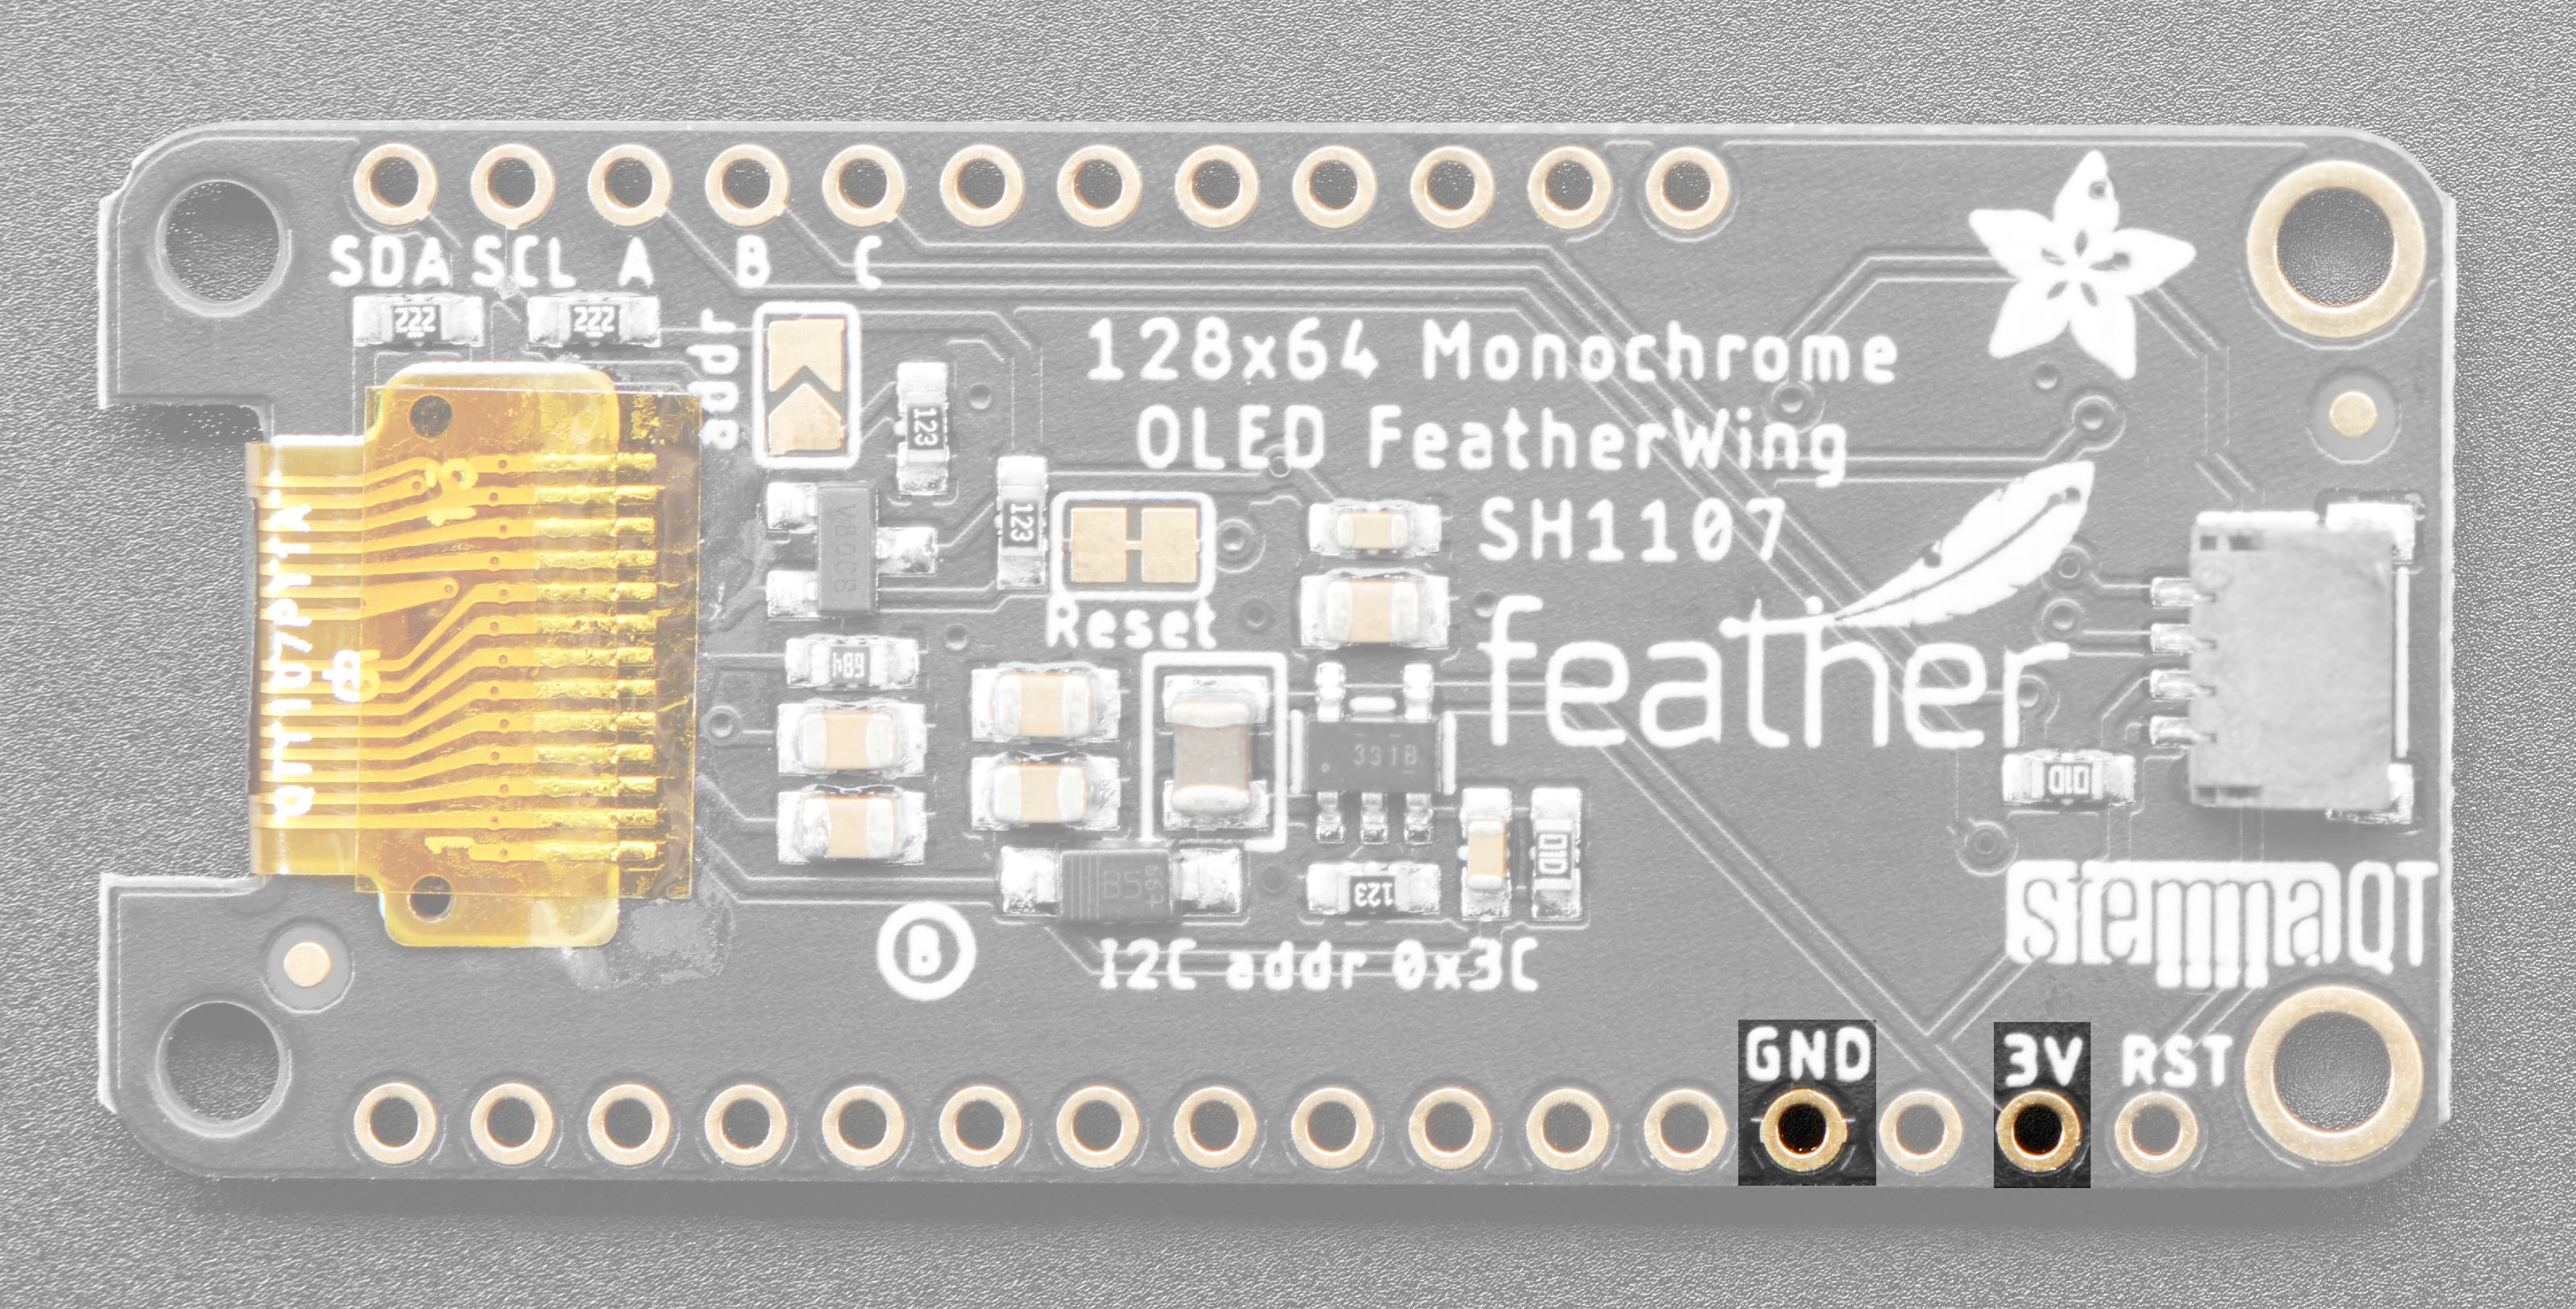 adafruit_products_FW_OLED_128x64_pinouts_power_pins.jpg